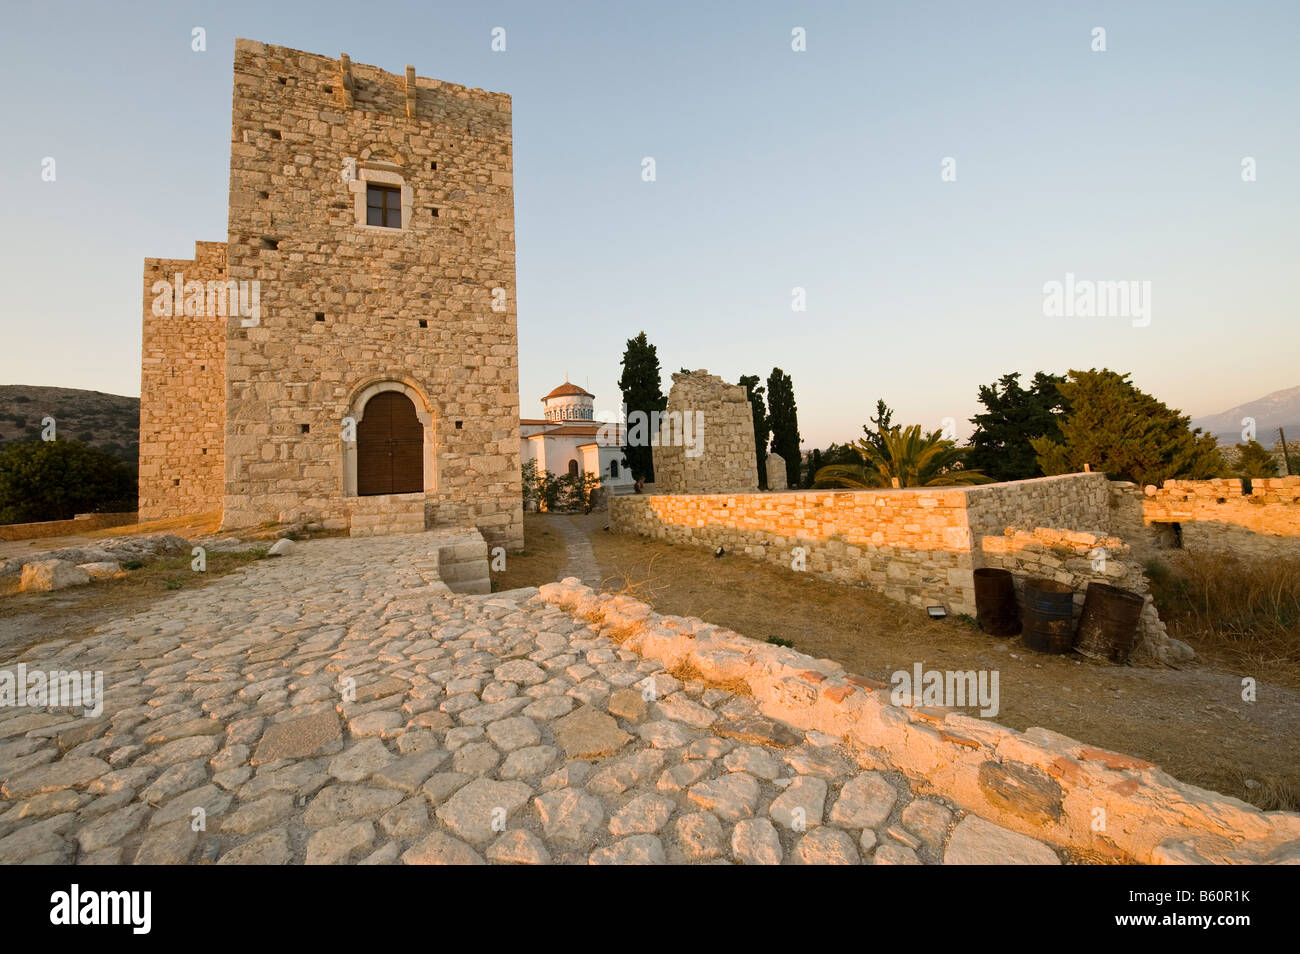 Castle and church in the light of the evening sun on a greek island Stock Photo